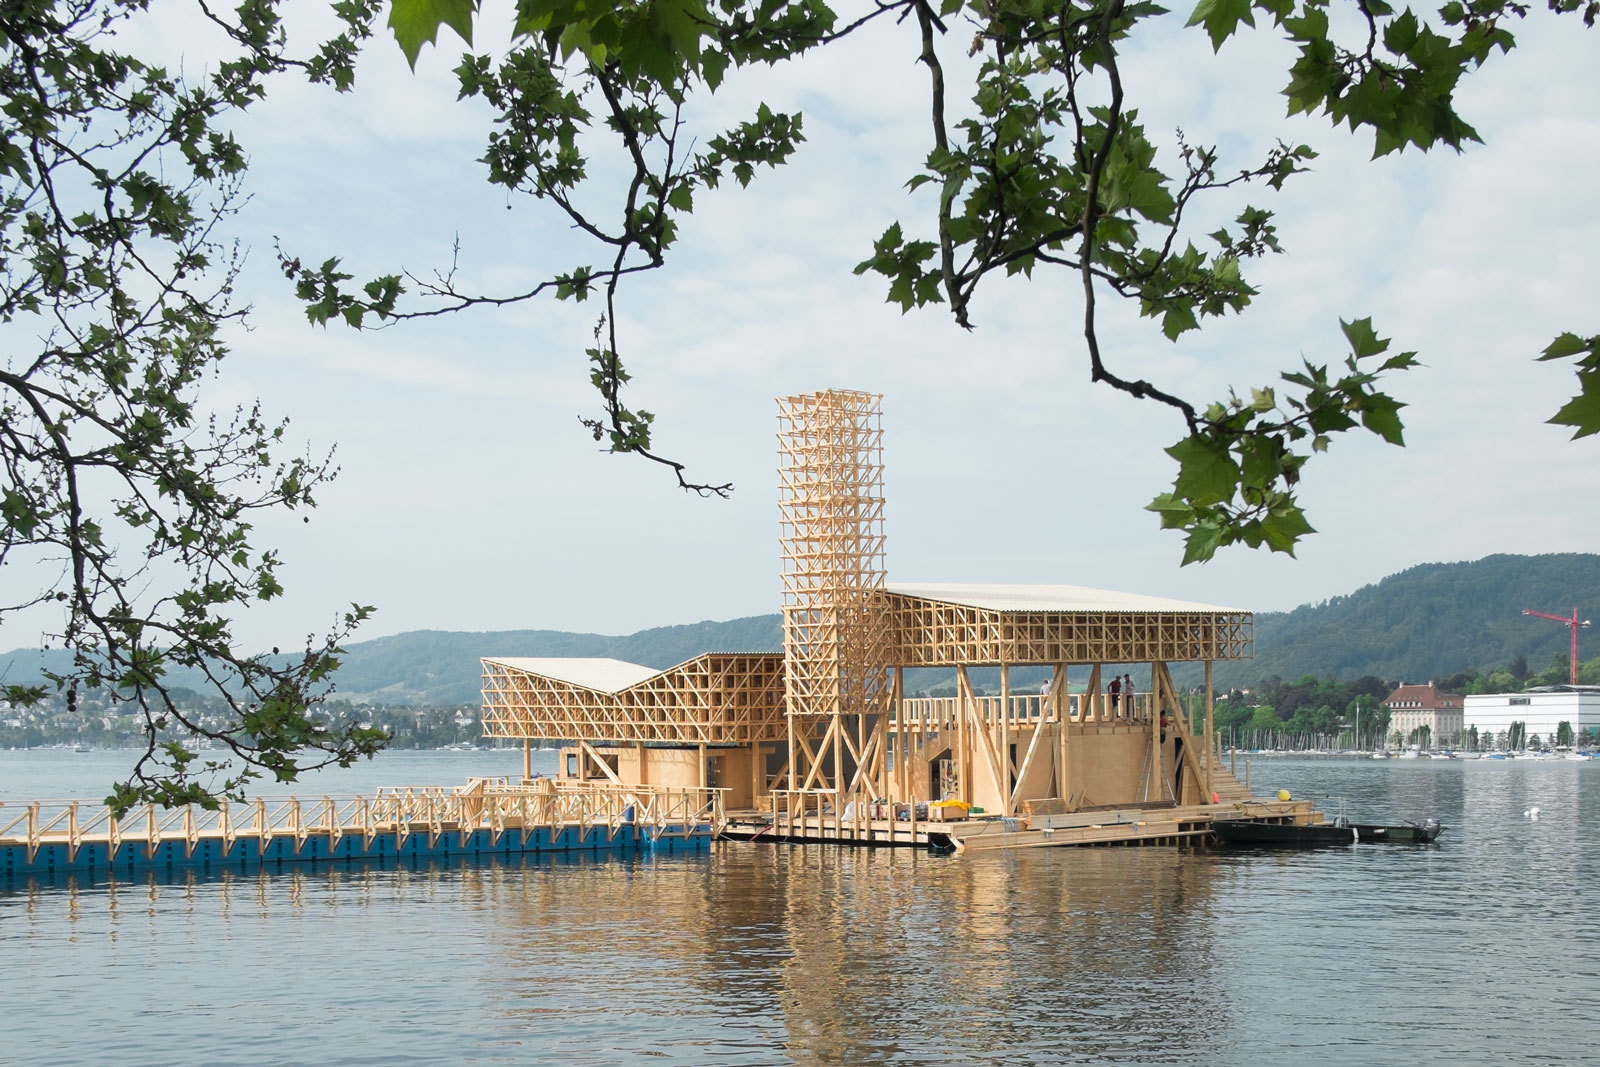 Pavilion of Reflections / Studio Tom Emerson | ArchDaily